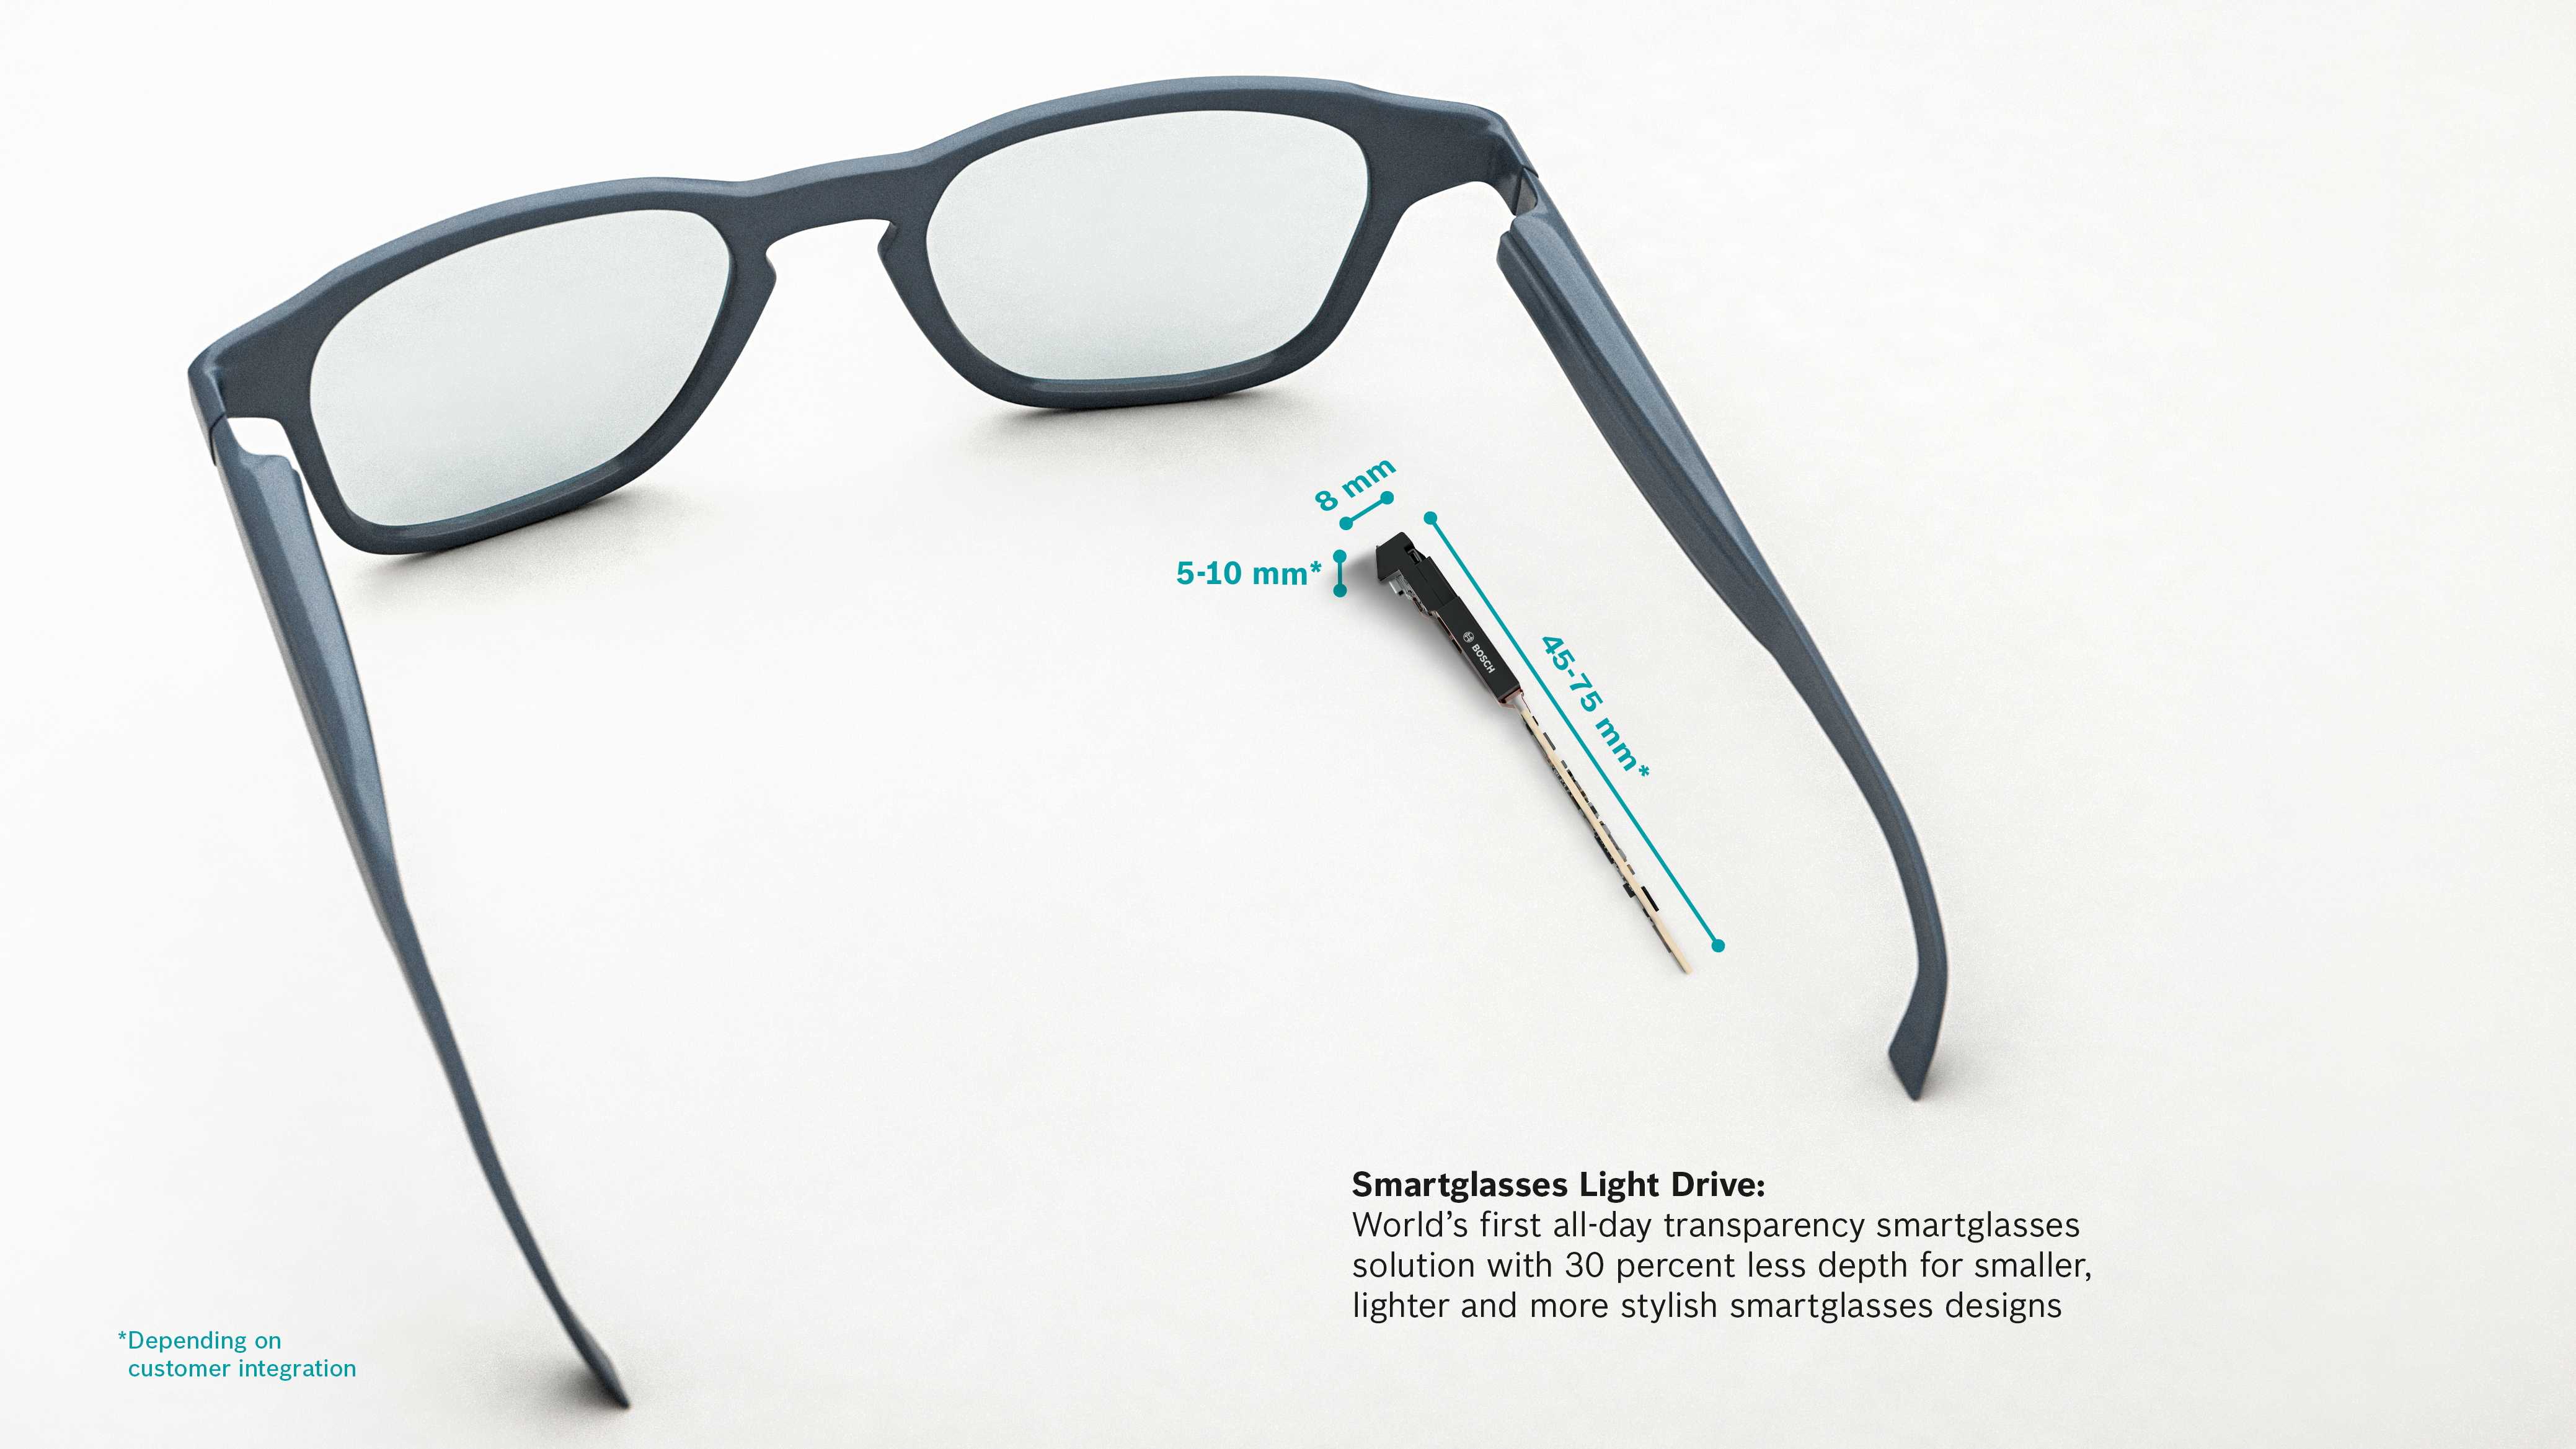 Smallest Smartglasses Light Drive solution on the market